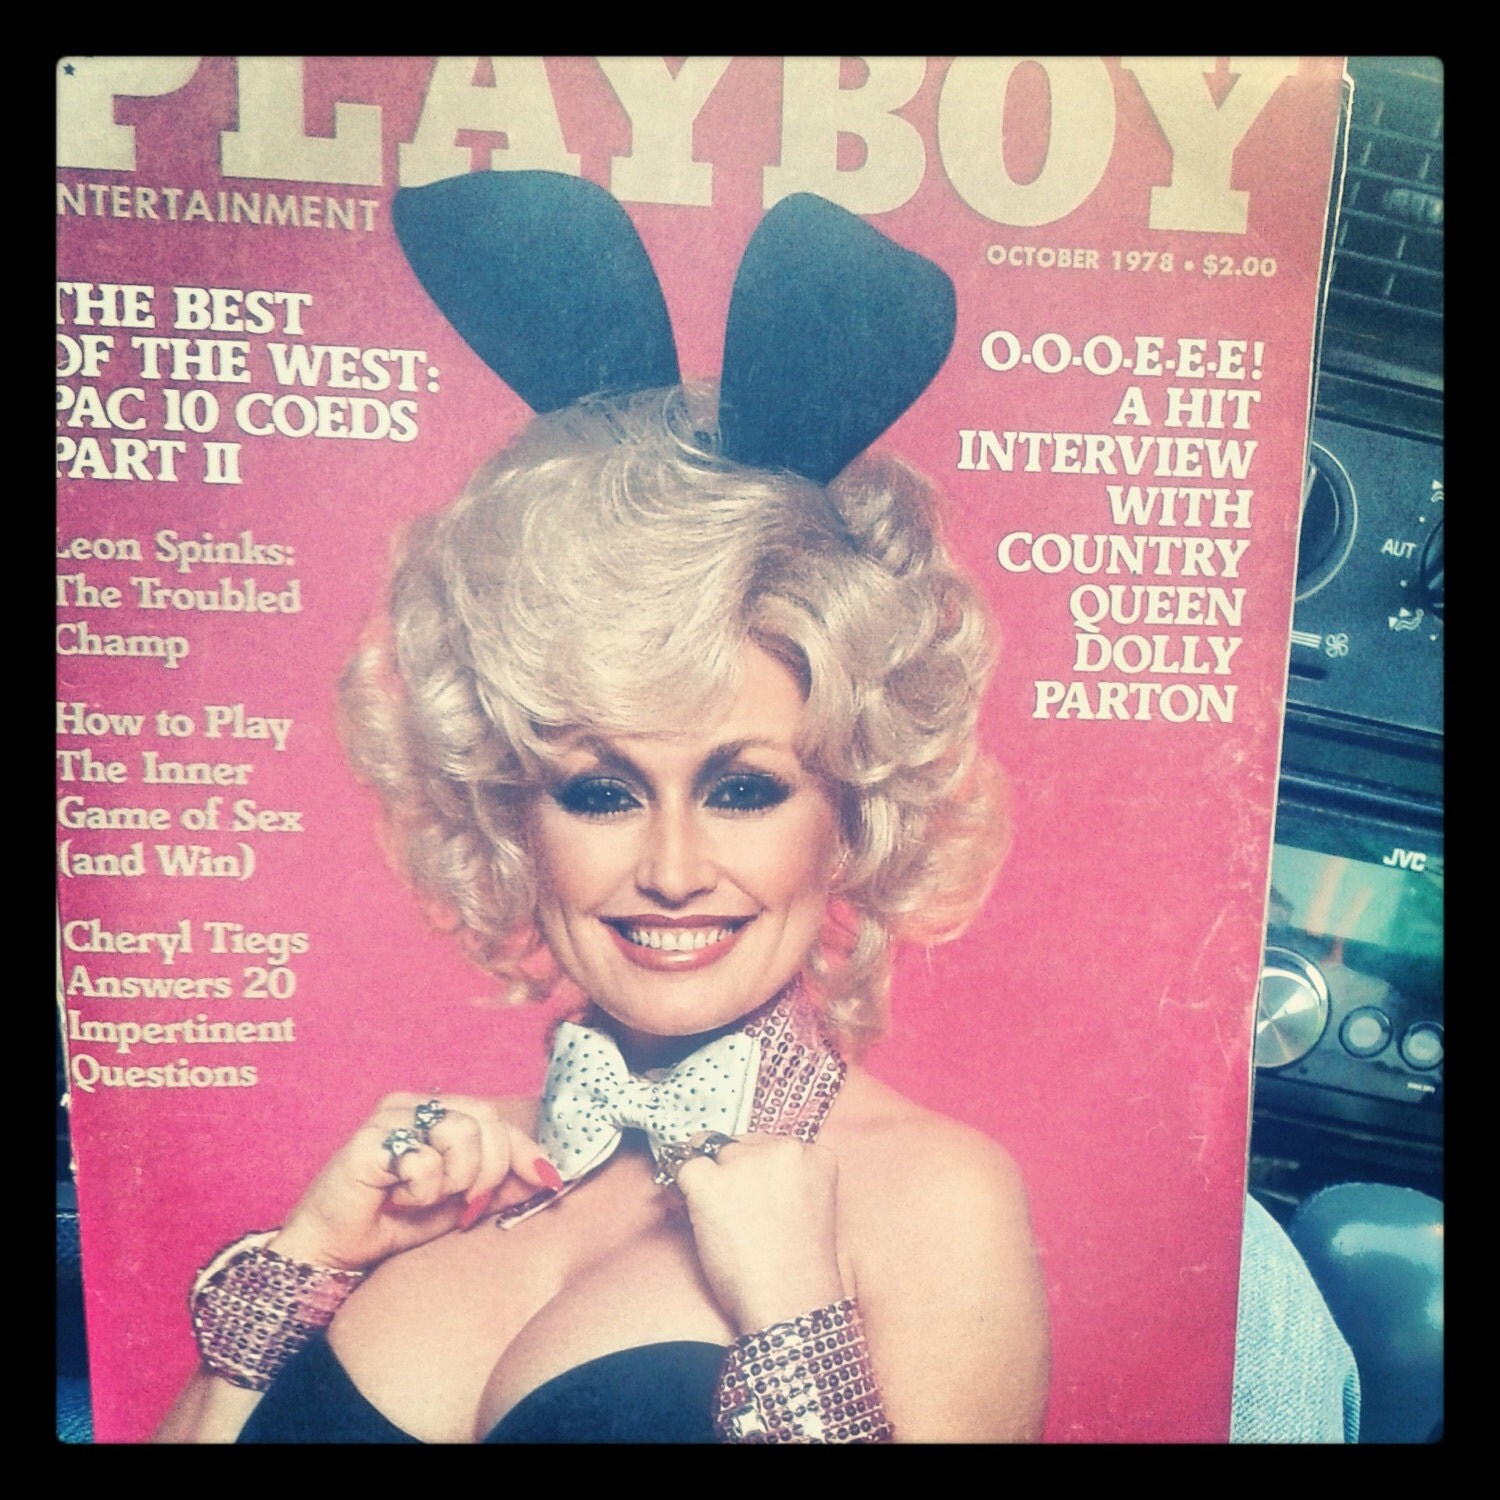 Dolly parton playboy